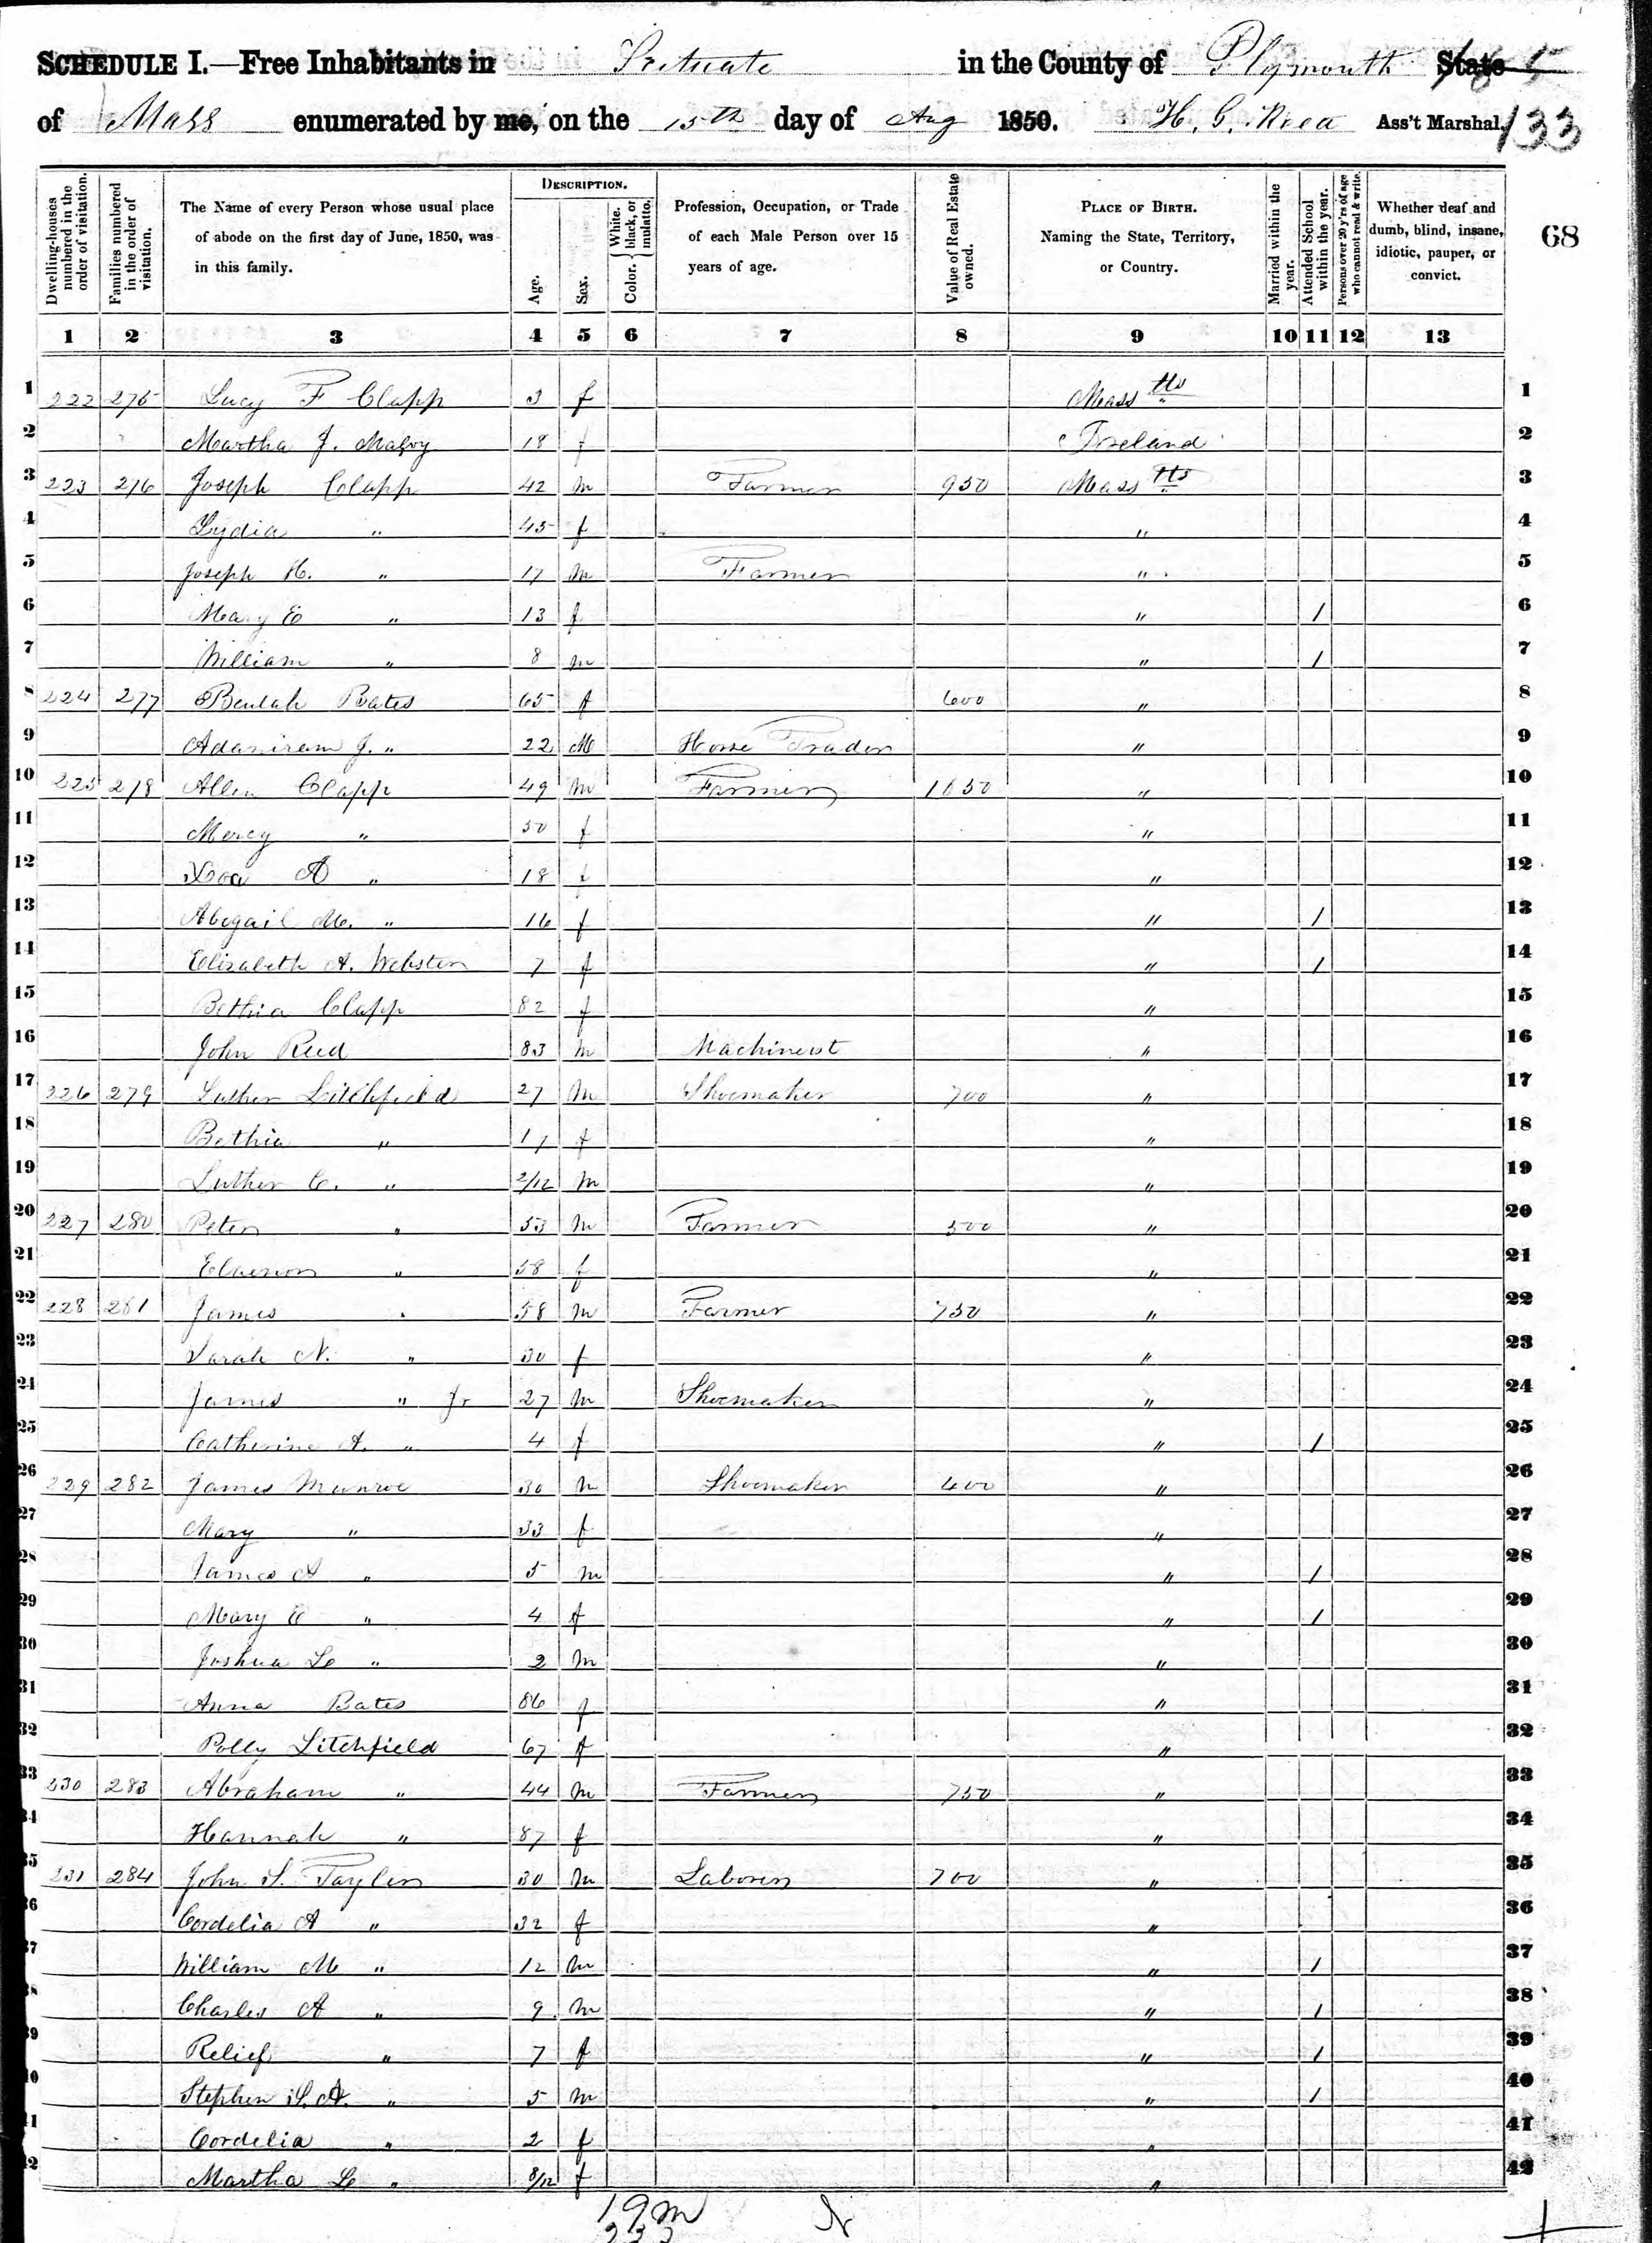 1850 Census Questionnaire